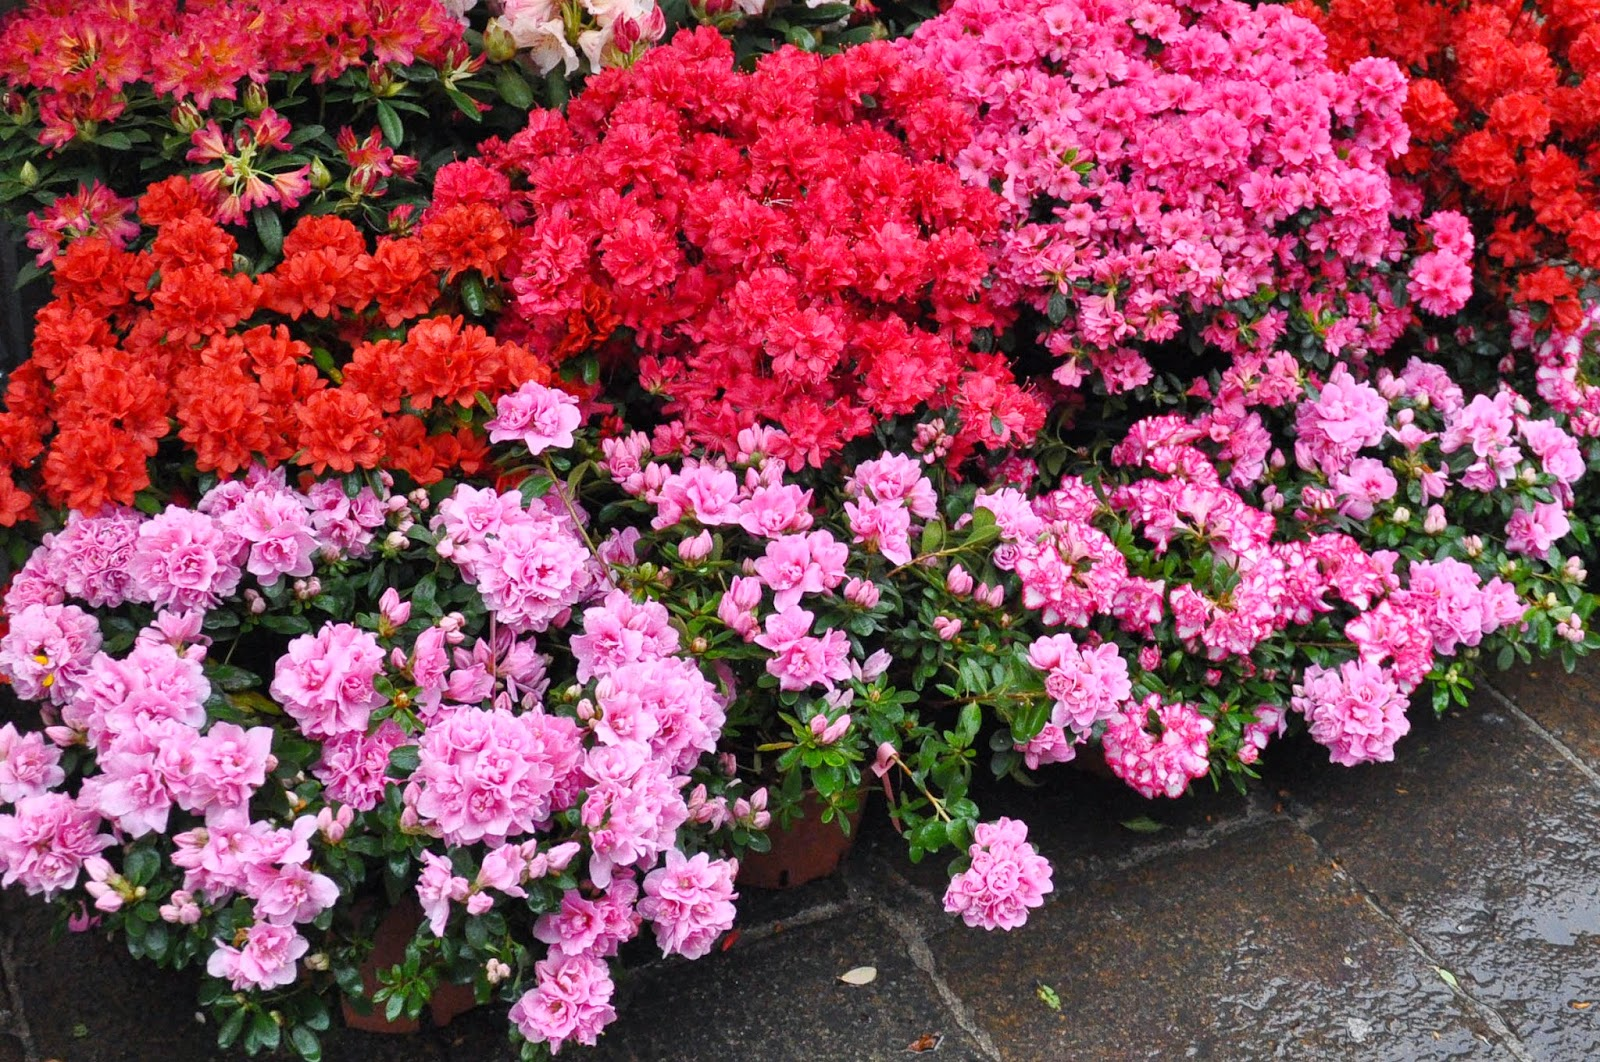 Pink and red potted plants, 7th Edition of 'Fiori, colori, e...' - Floriculture market show, Vicenza, Italy